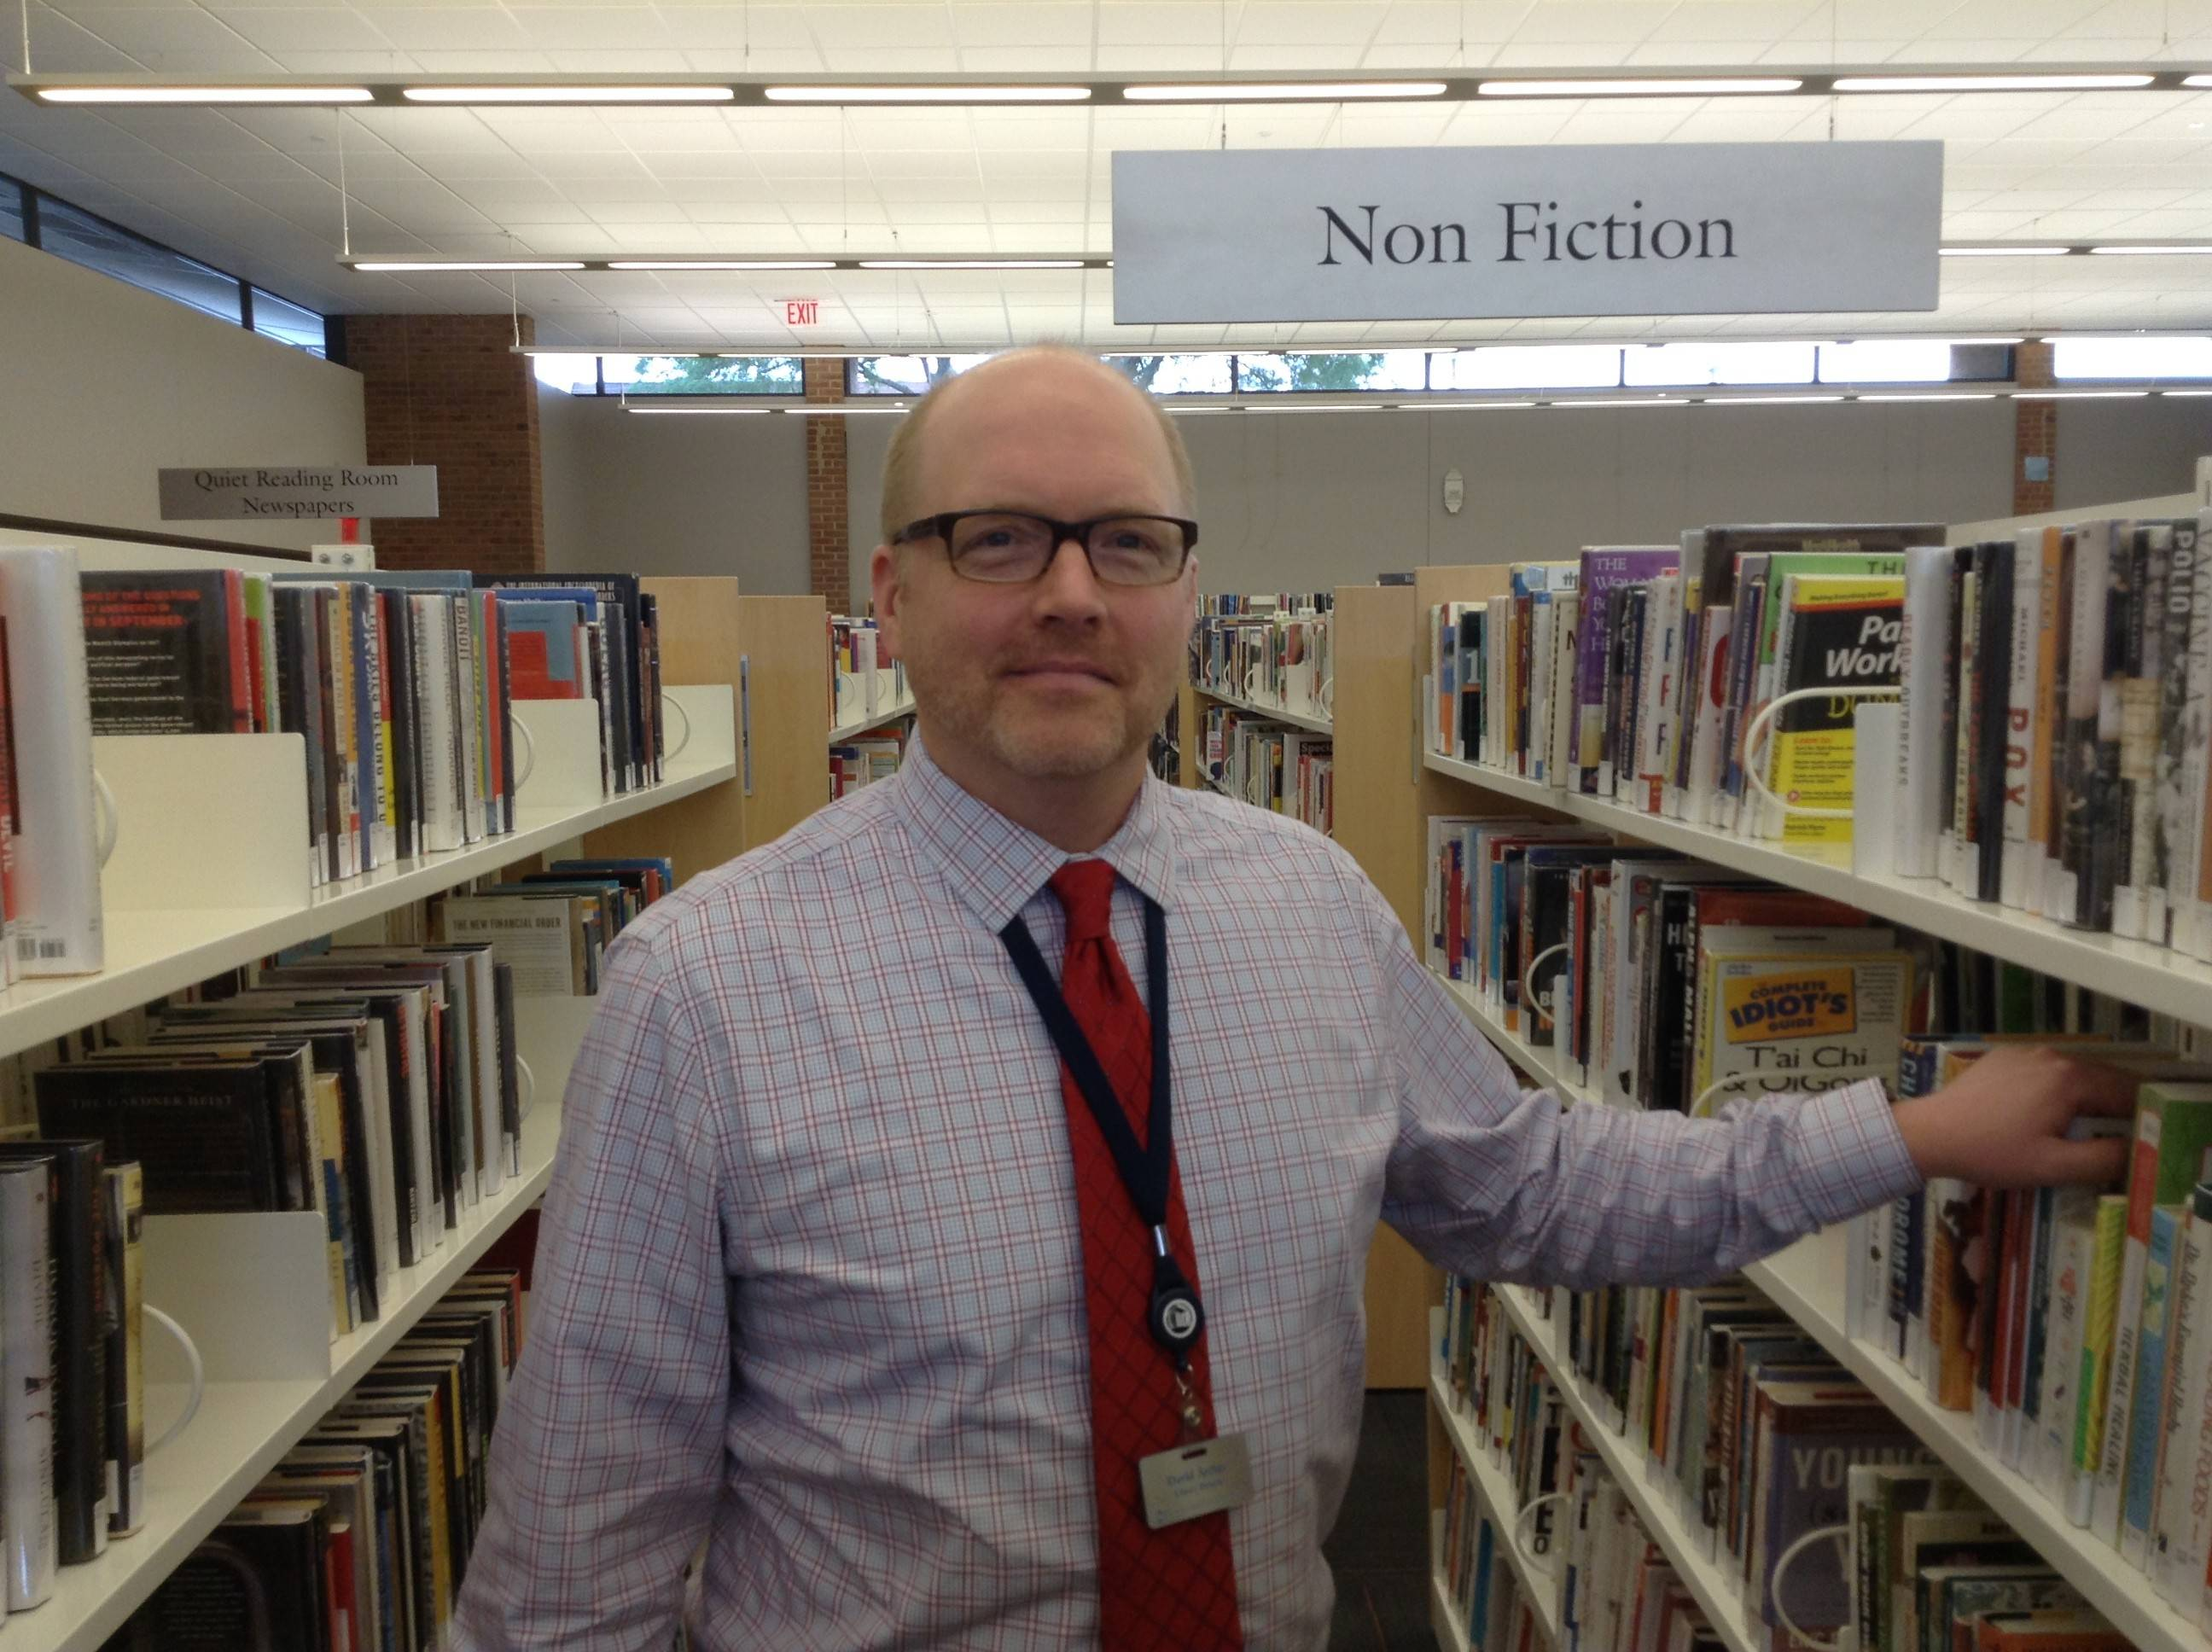 New director Archer has big plans for the Cook Memorial libraries